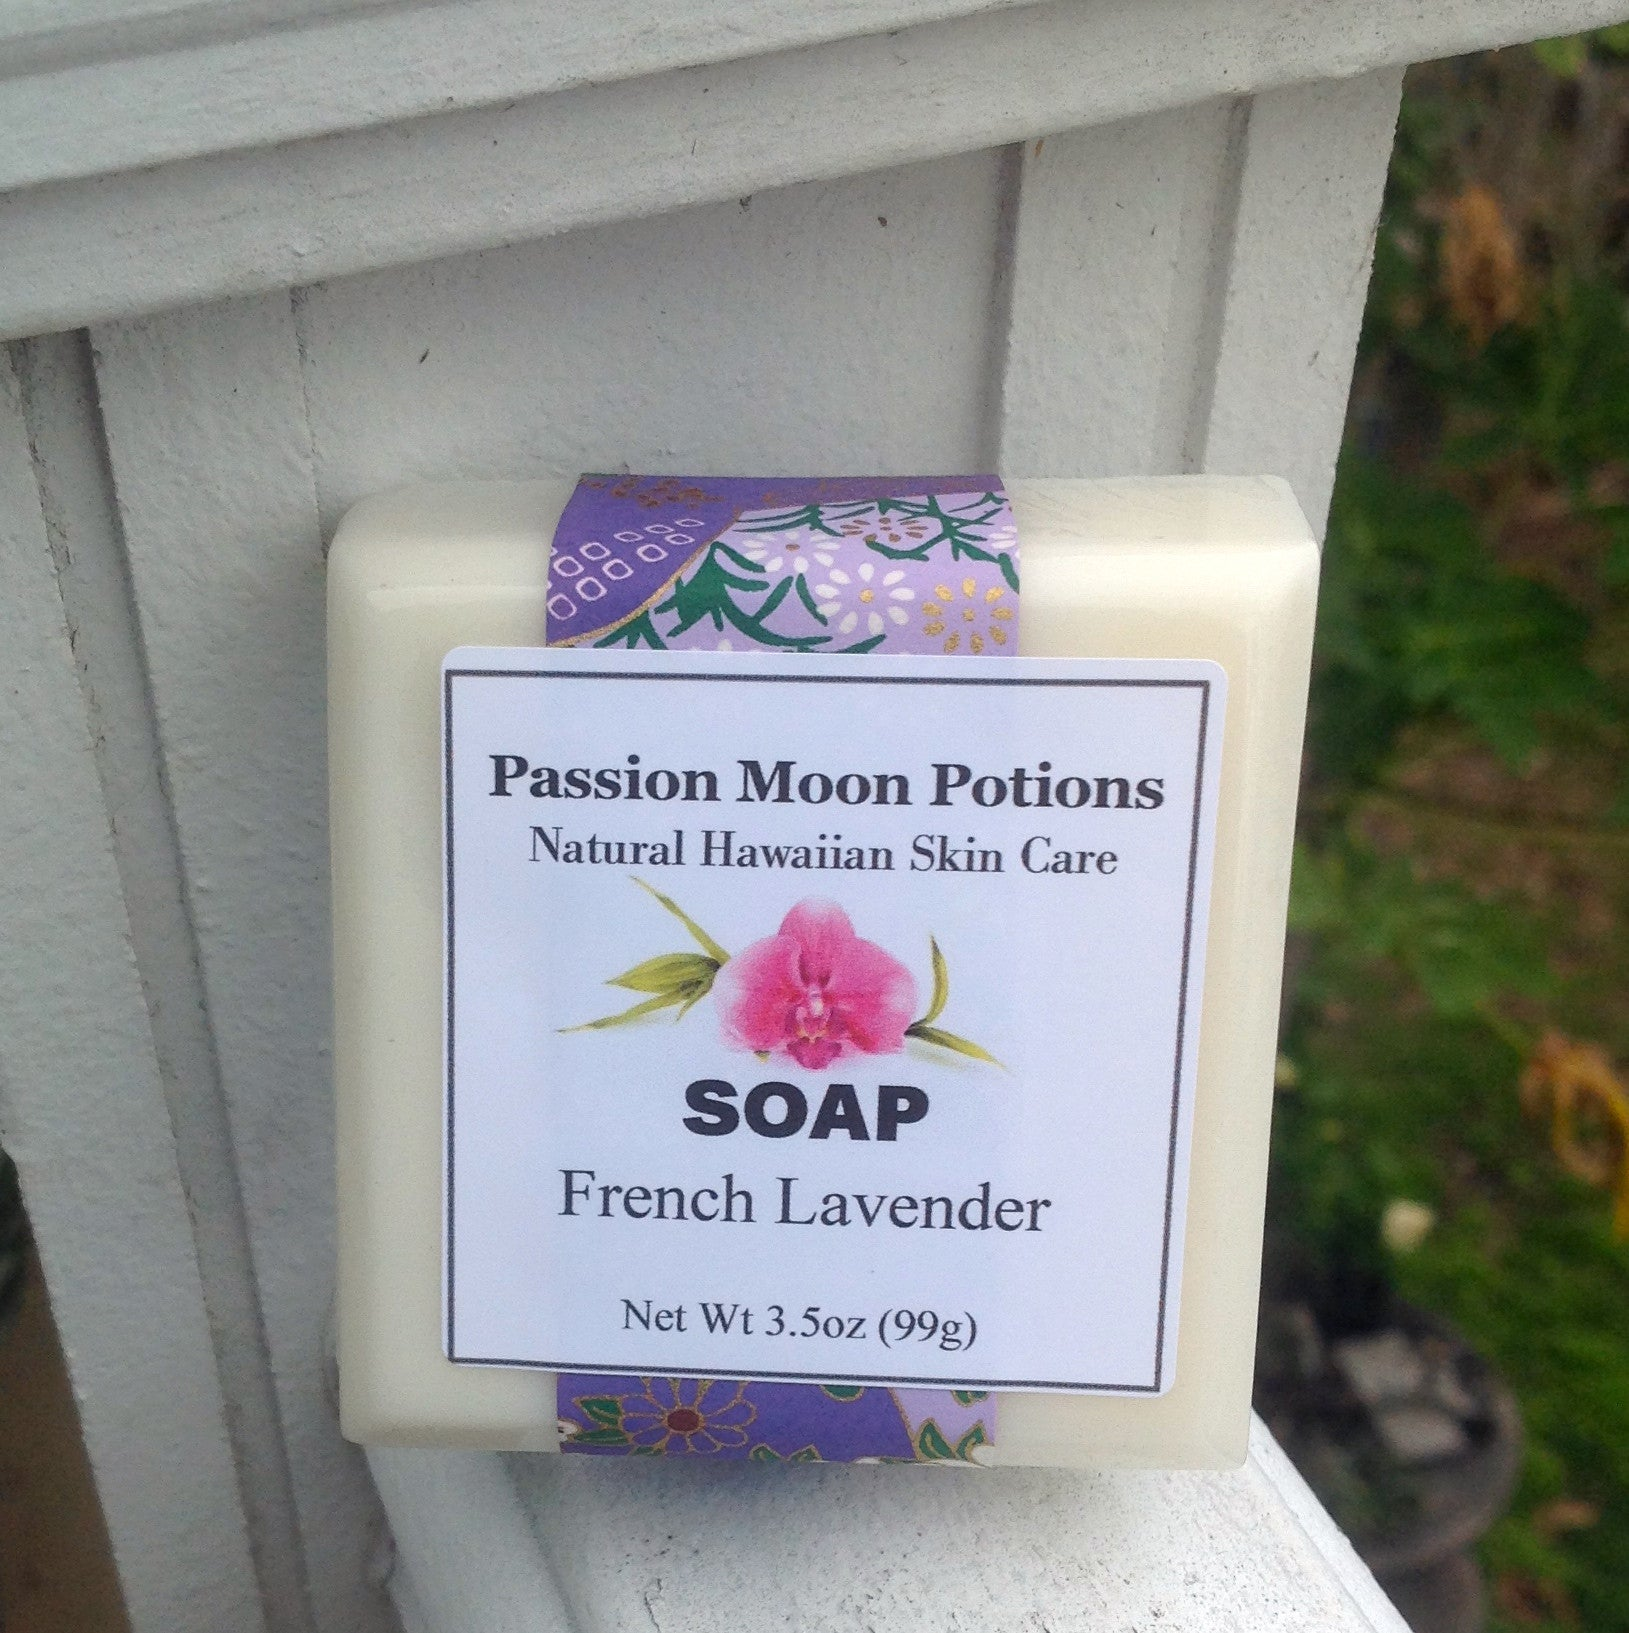 French Lavender Soap - Passion Moon Potions - 4